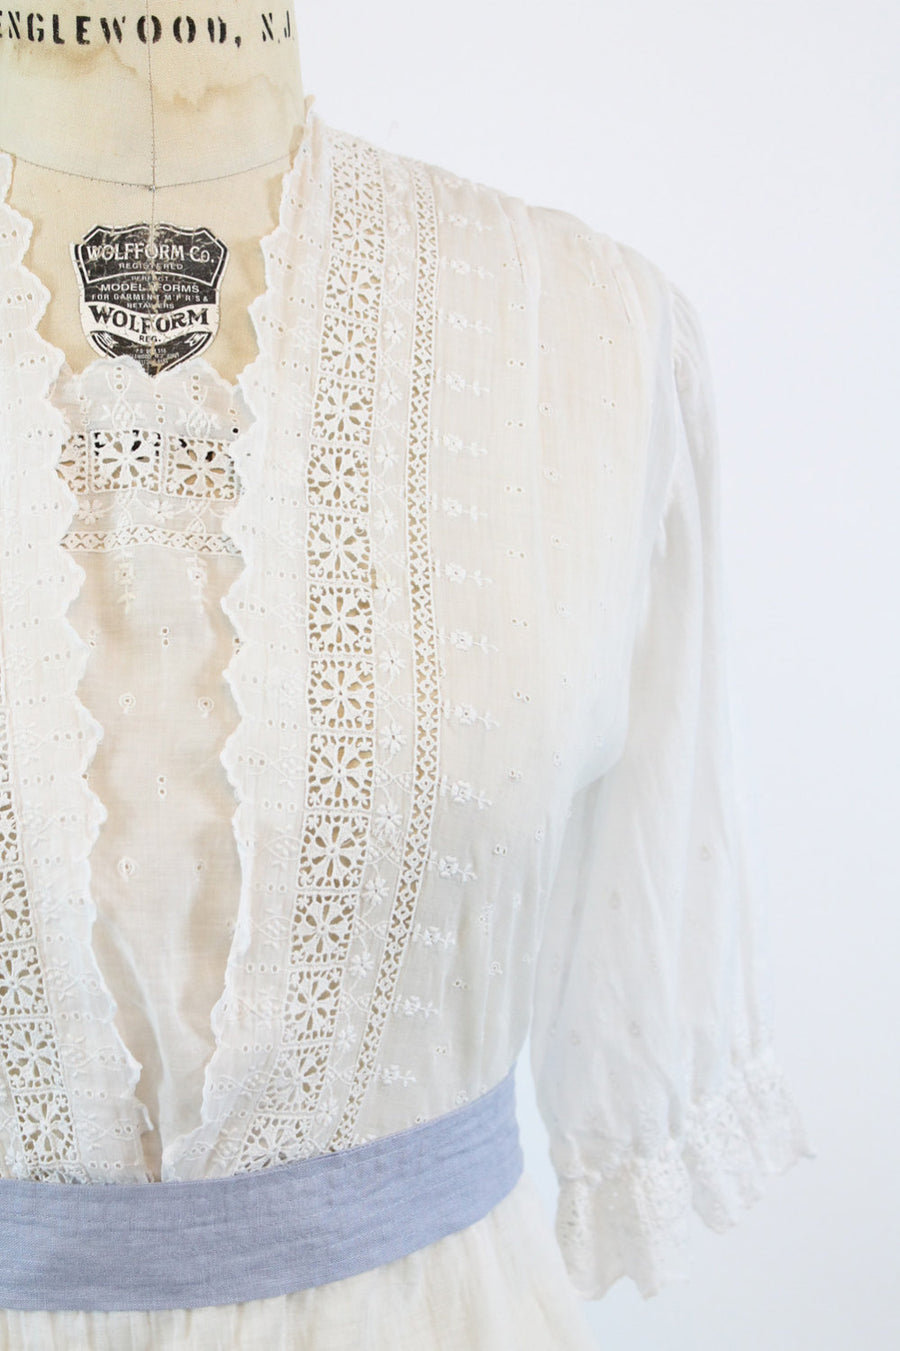 1910s Edwardian Dress Medium Large /  Antique Cotton Lace Dress /  Windsor Square Dress